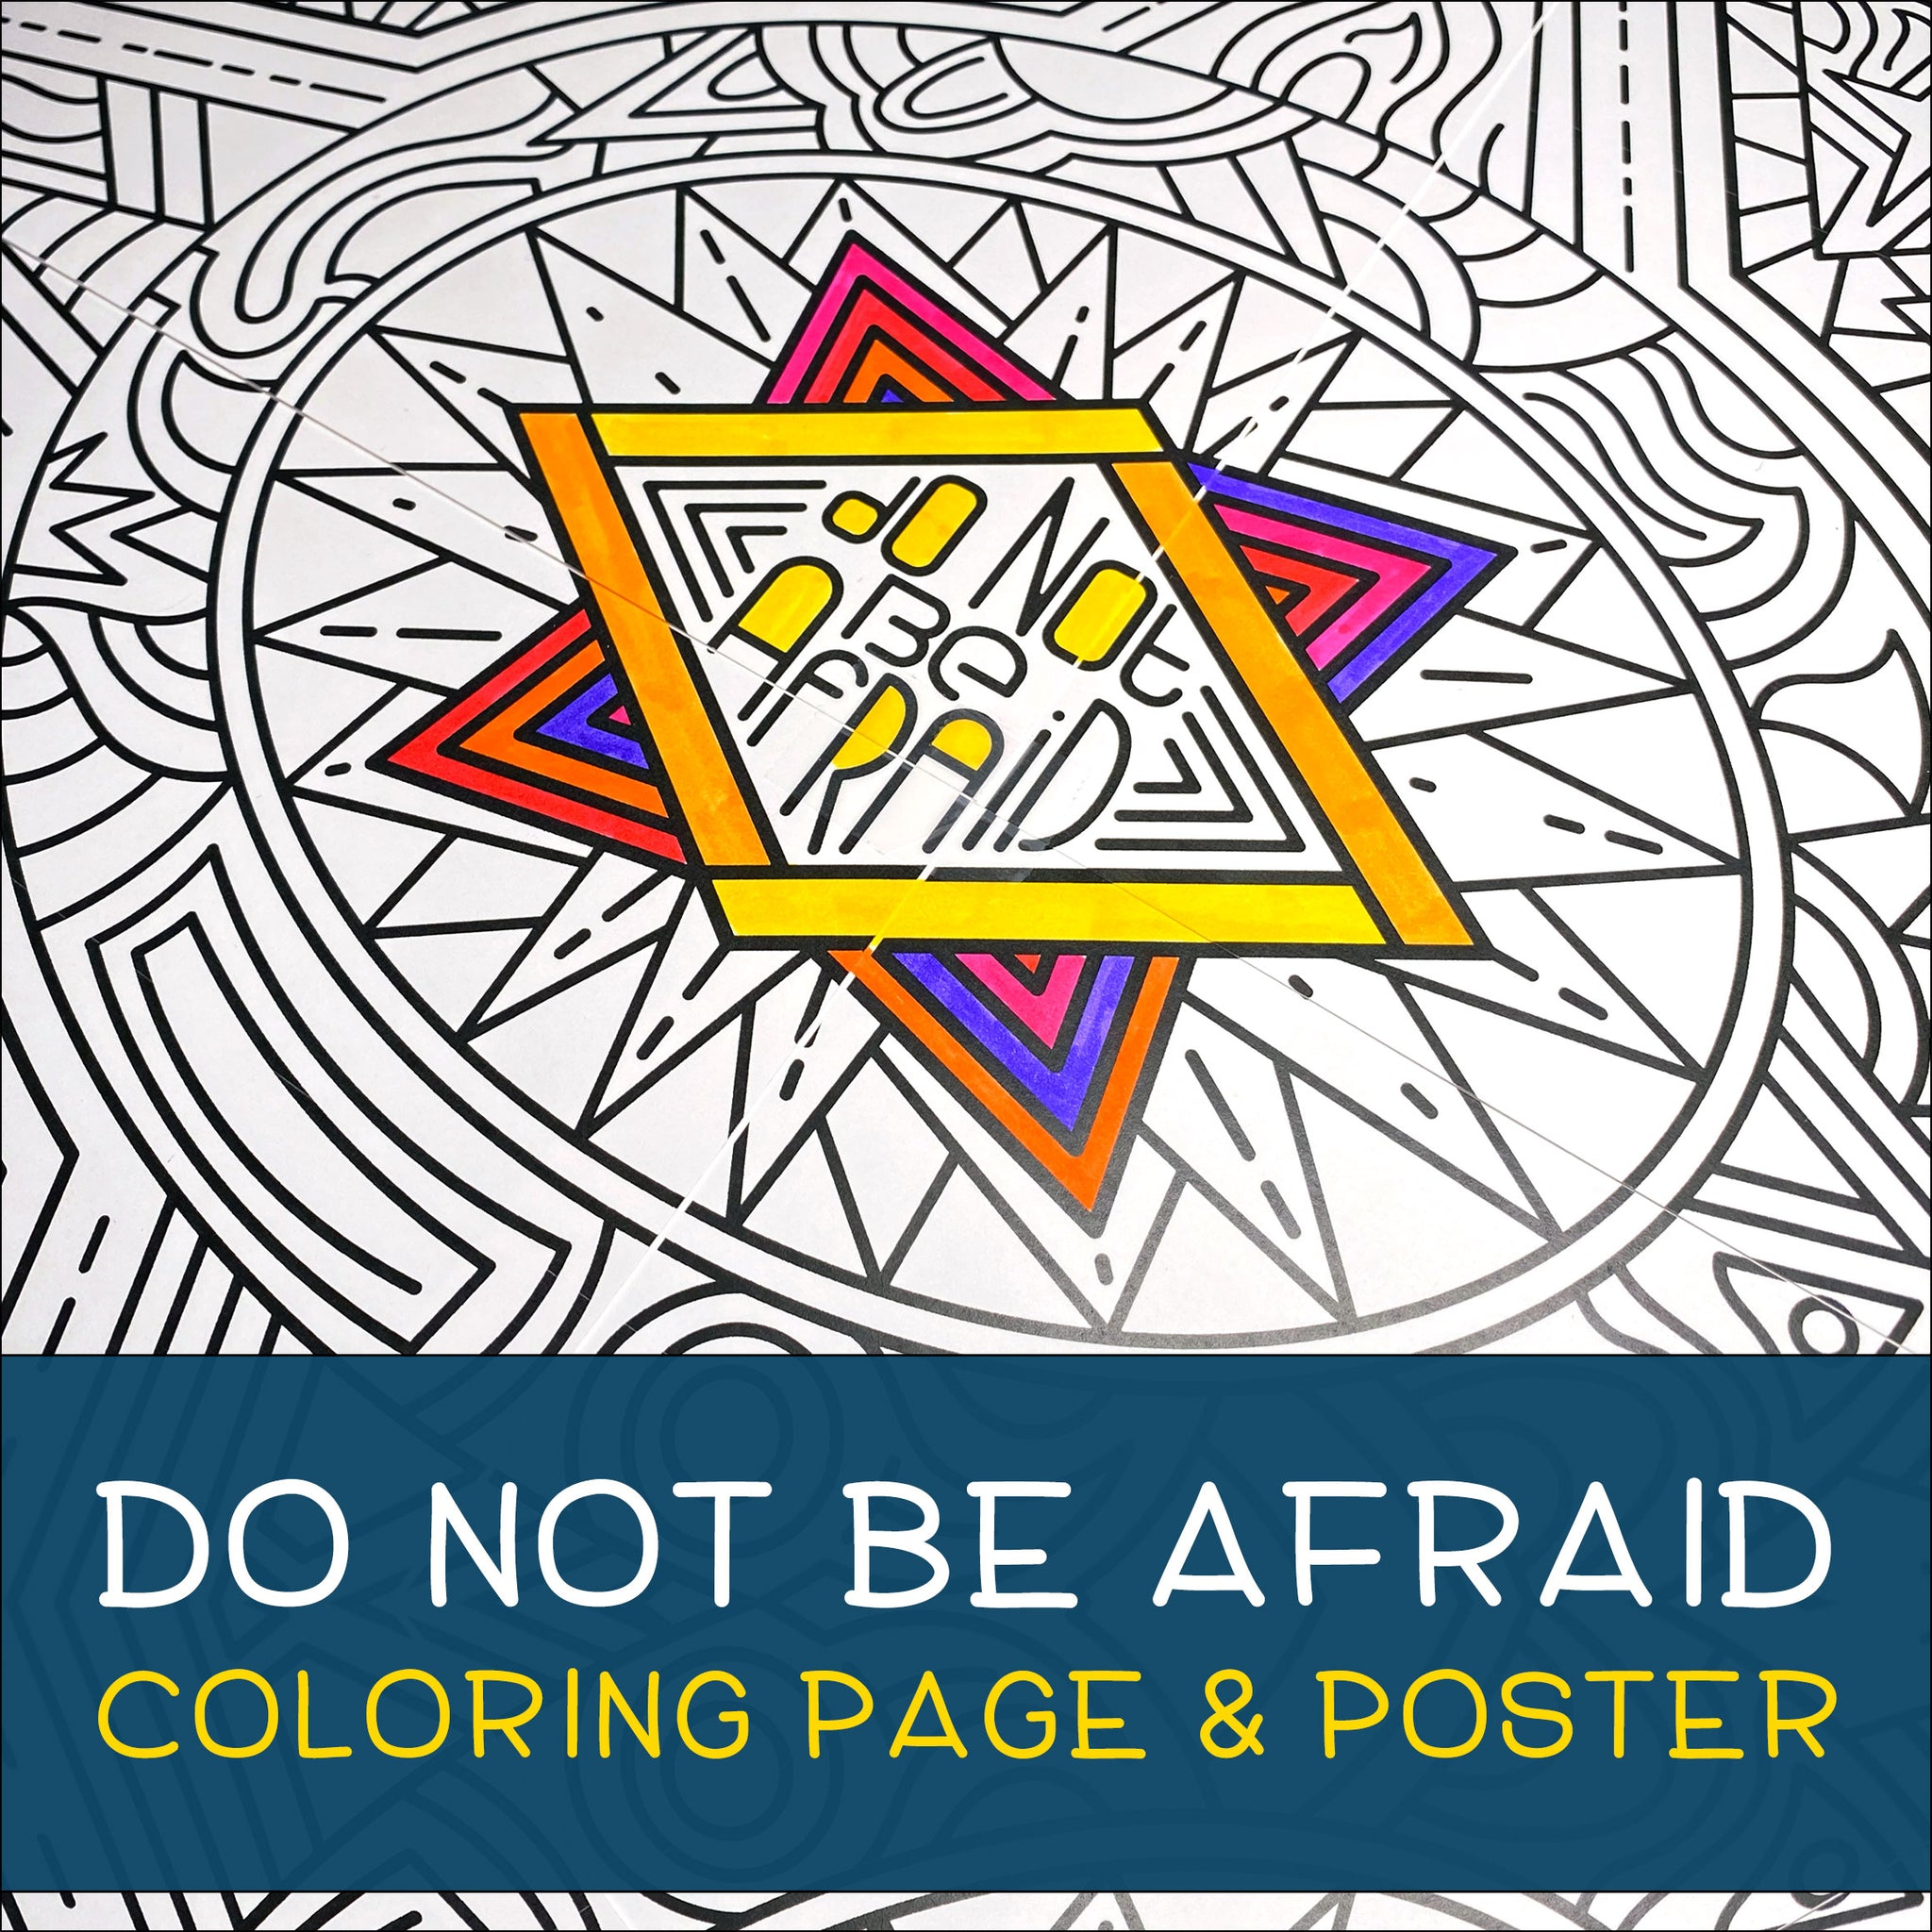 Do Not Be Afraid Coloring Page & Poster